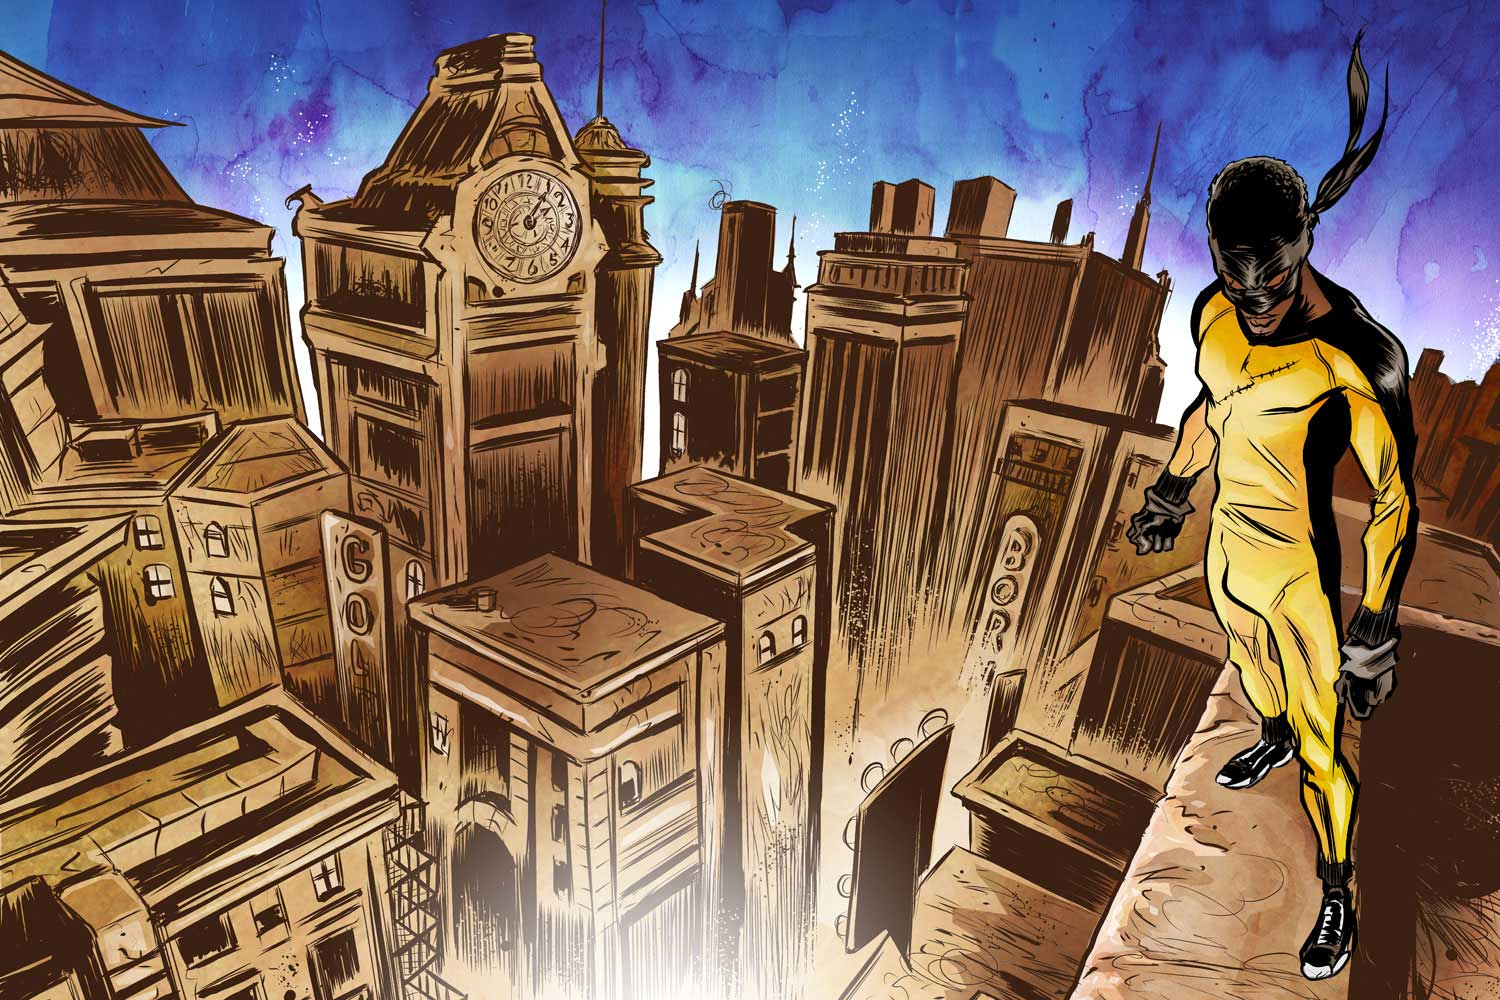 illustration-Comics_Urban-legend-over-city-Newtasty